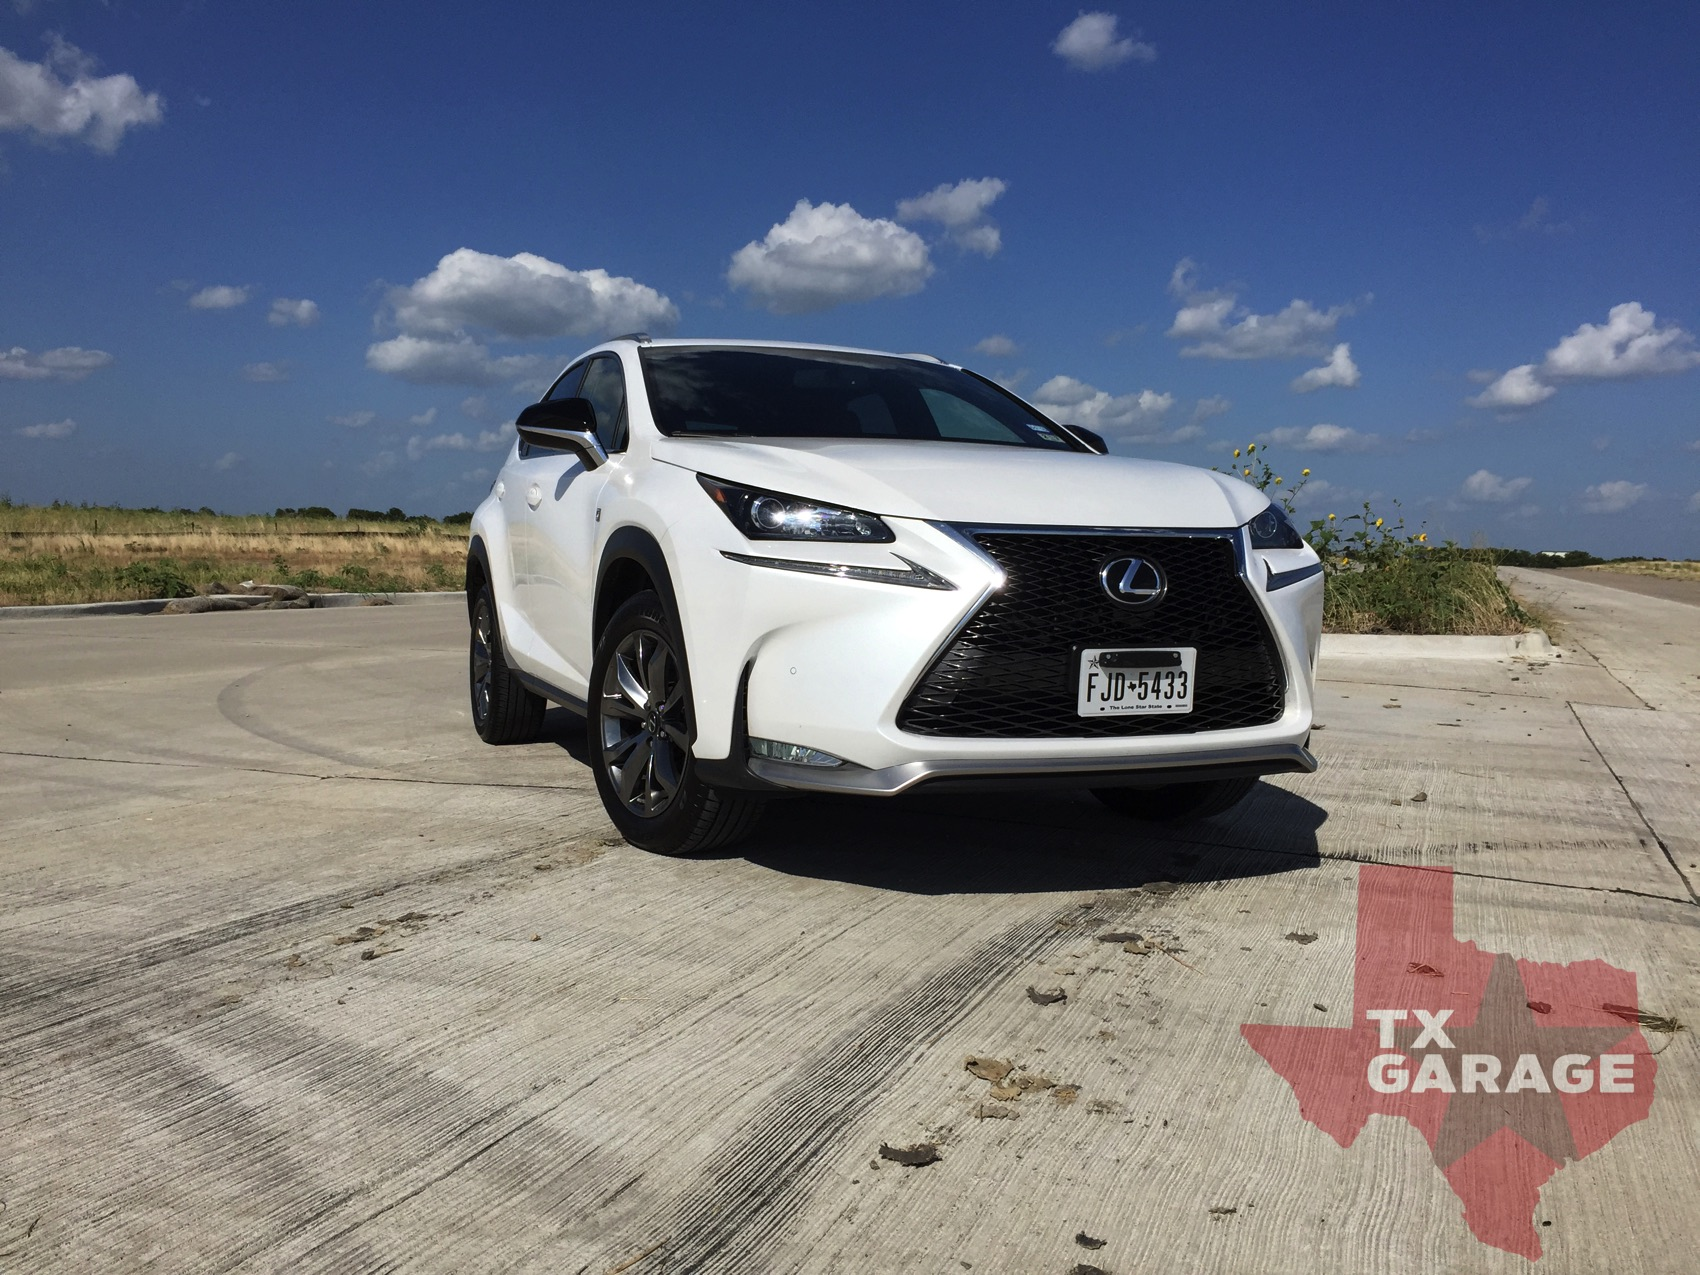 The 2015 Lexus NX 200t F-Sport by txGarage